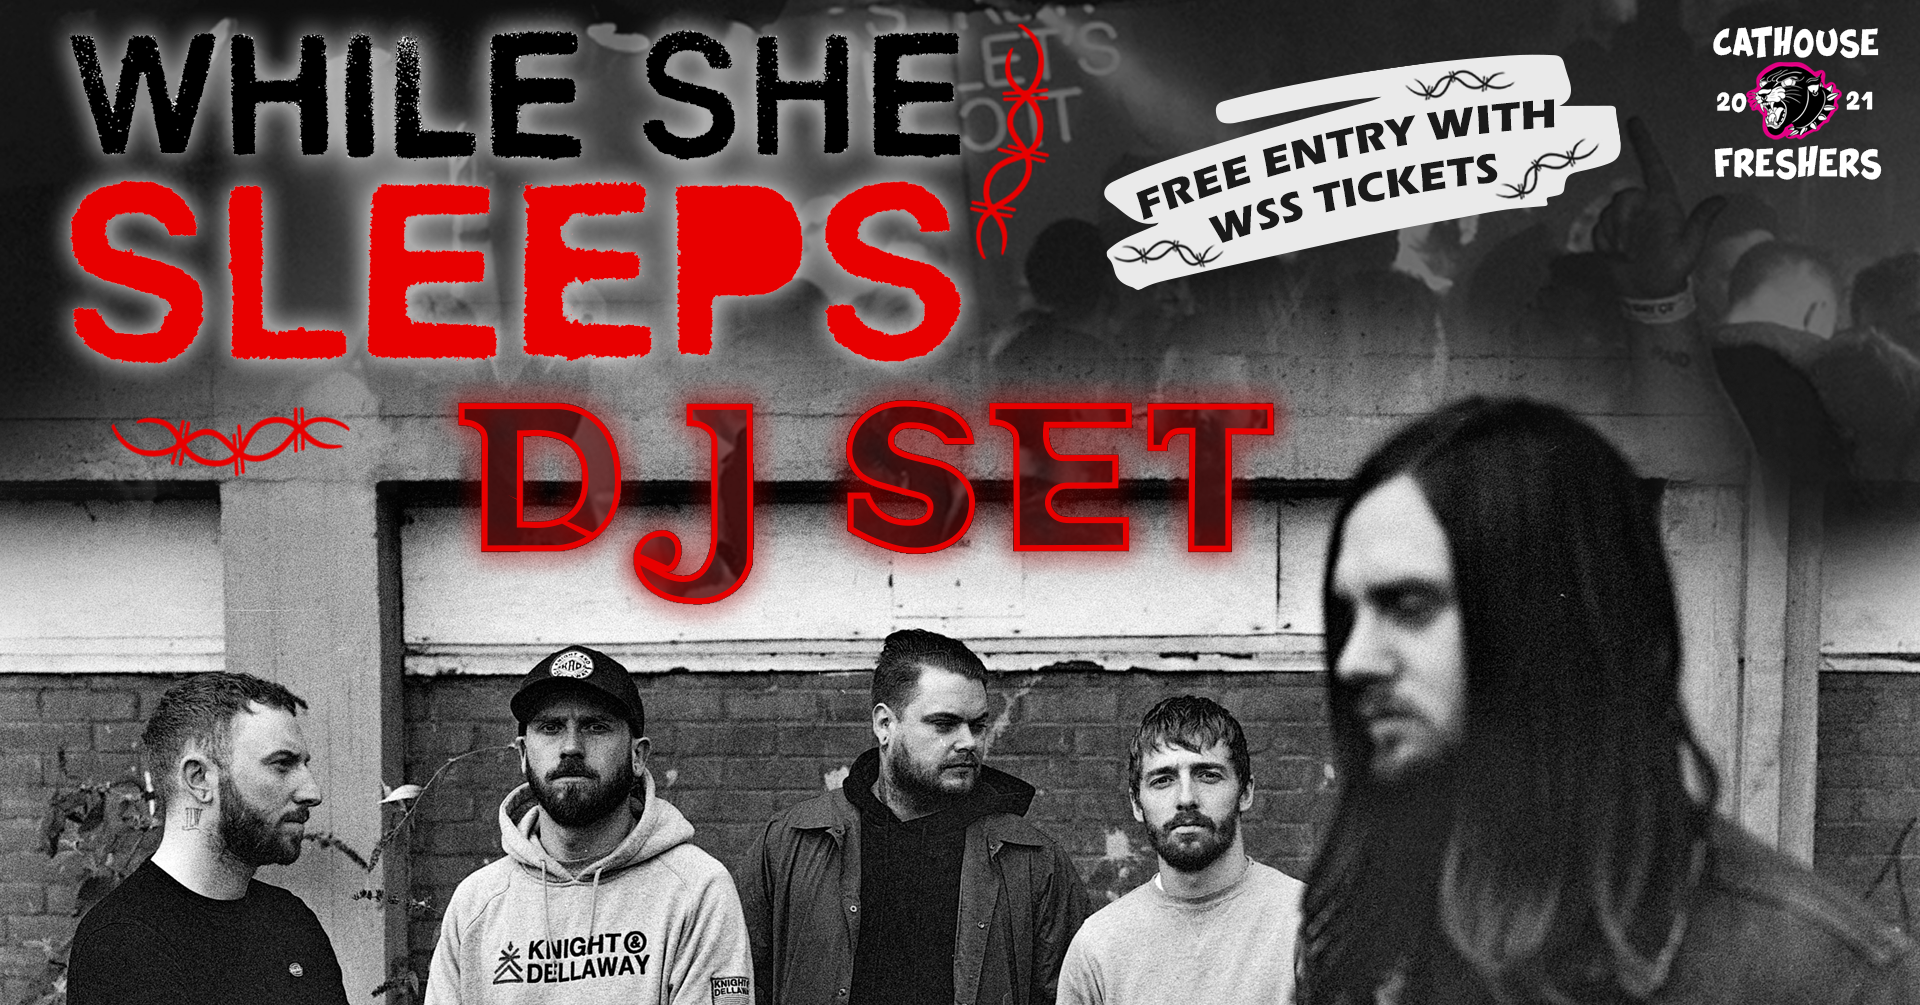 graphic with text: Cathouse 2021 Freshers   While She Sleeps DJ Set   free entry with tickets